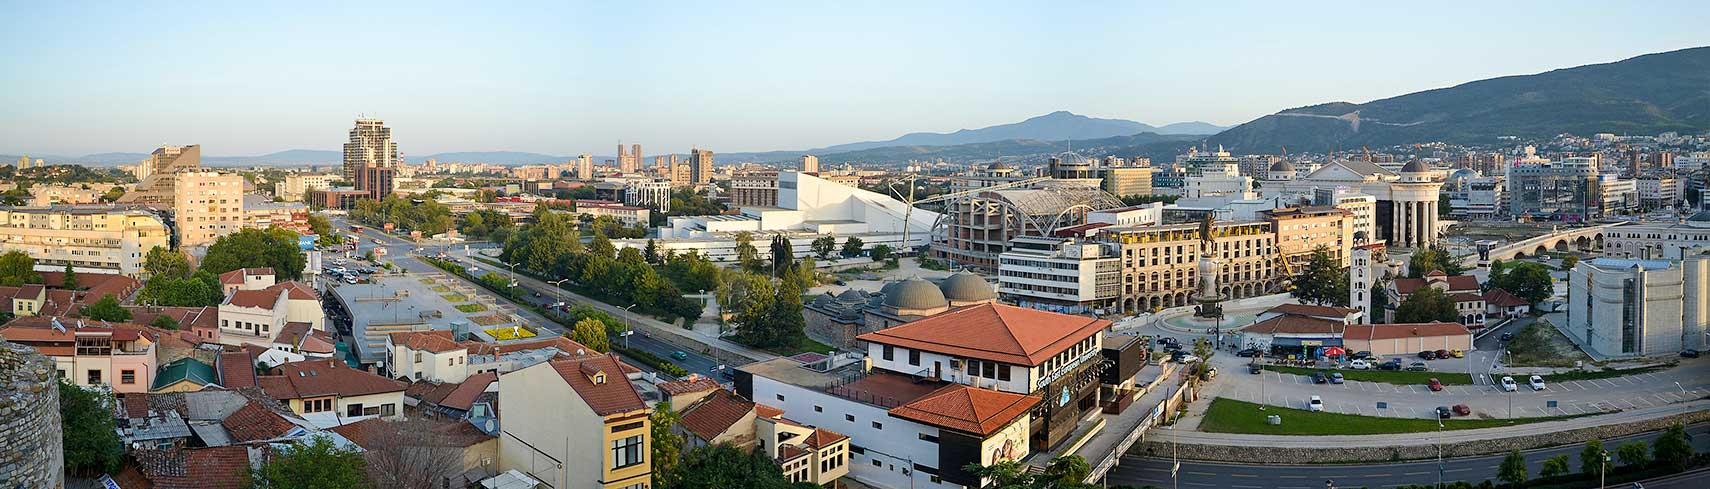 Google Map of Skopje, Republic of Macedonia - Nations Online